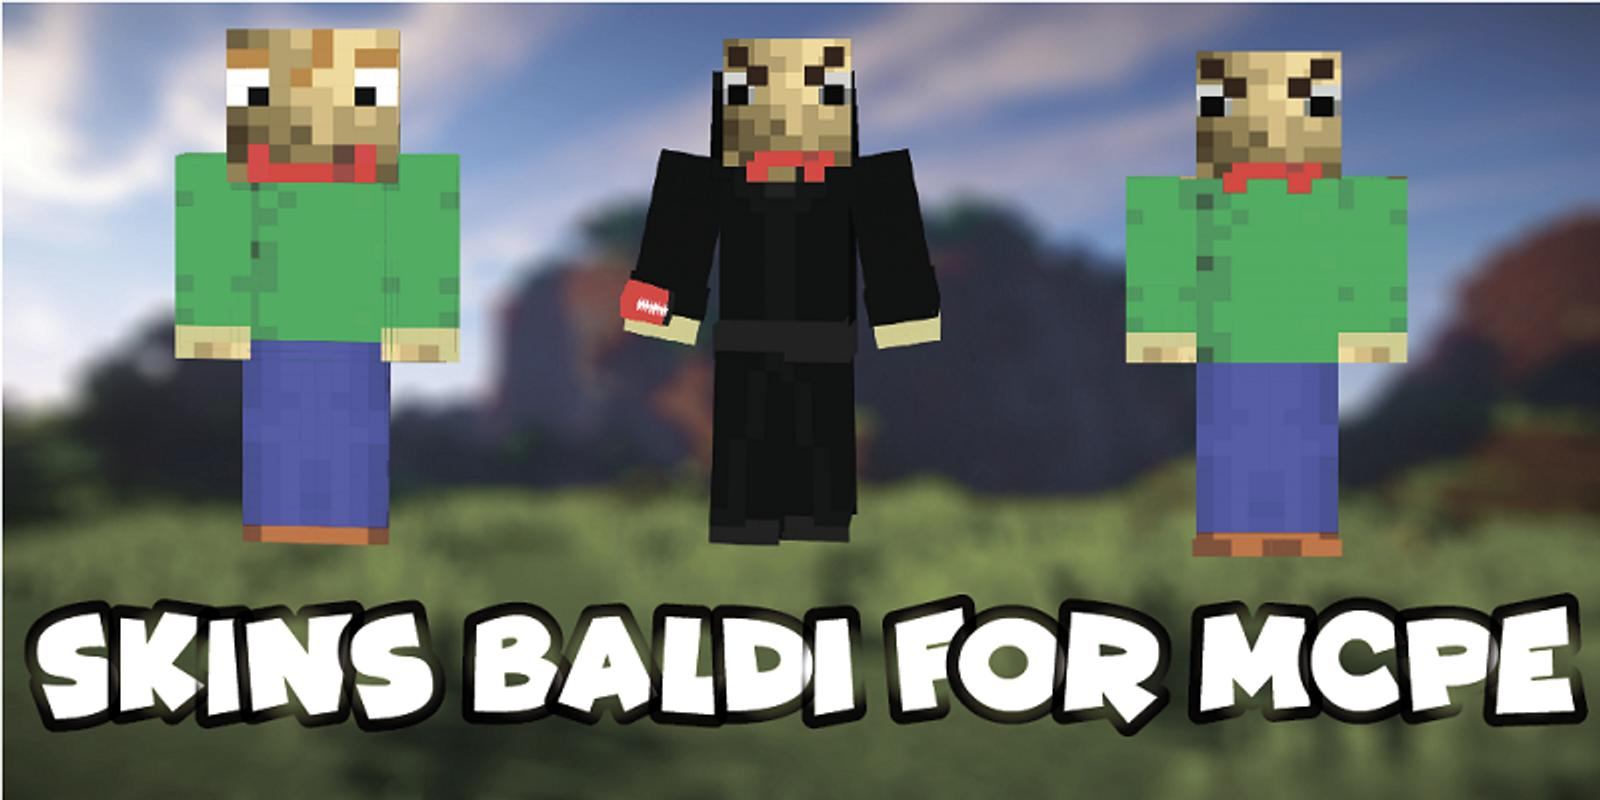 Skins Baldi For Minecraft PE For Android APK Download - Skin para minecraft pe frozen